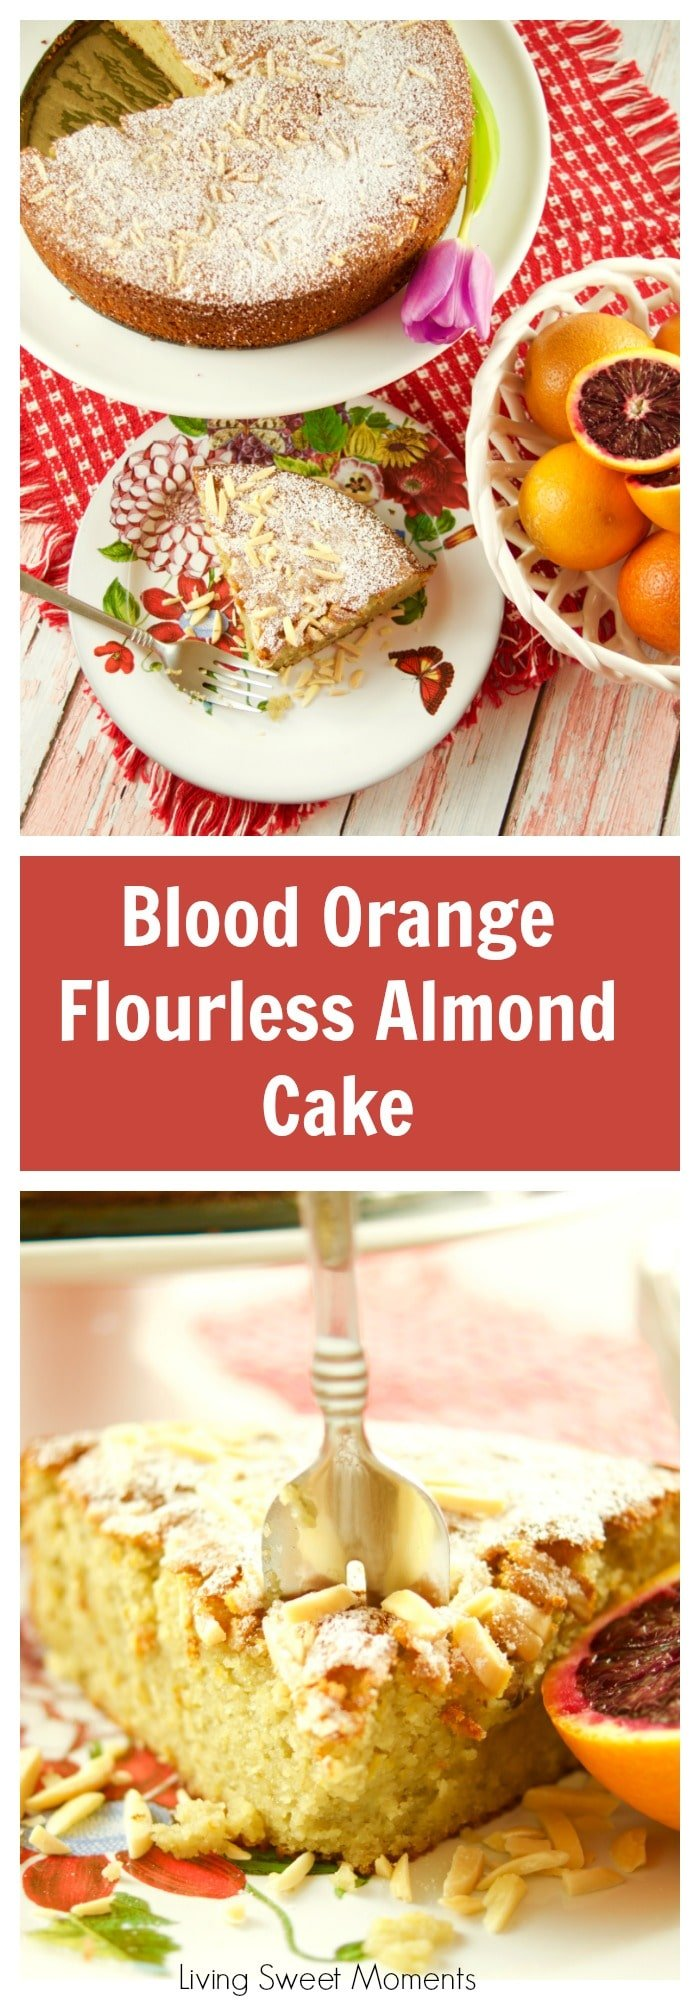 This moist Blood Orange Almond Flourless Cake is delicious and easy to make. The perfect Spring dessert to enjoy with tea and coffee. It's gluten free too